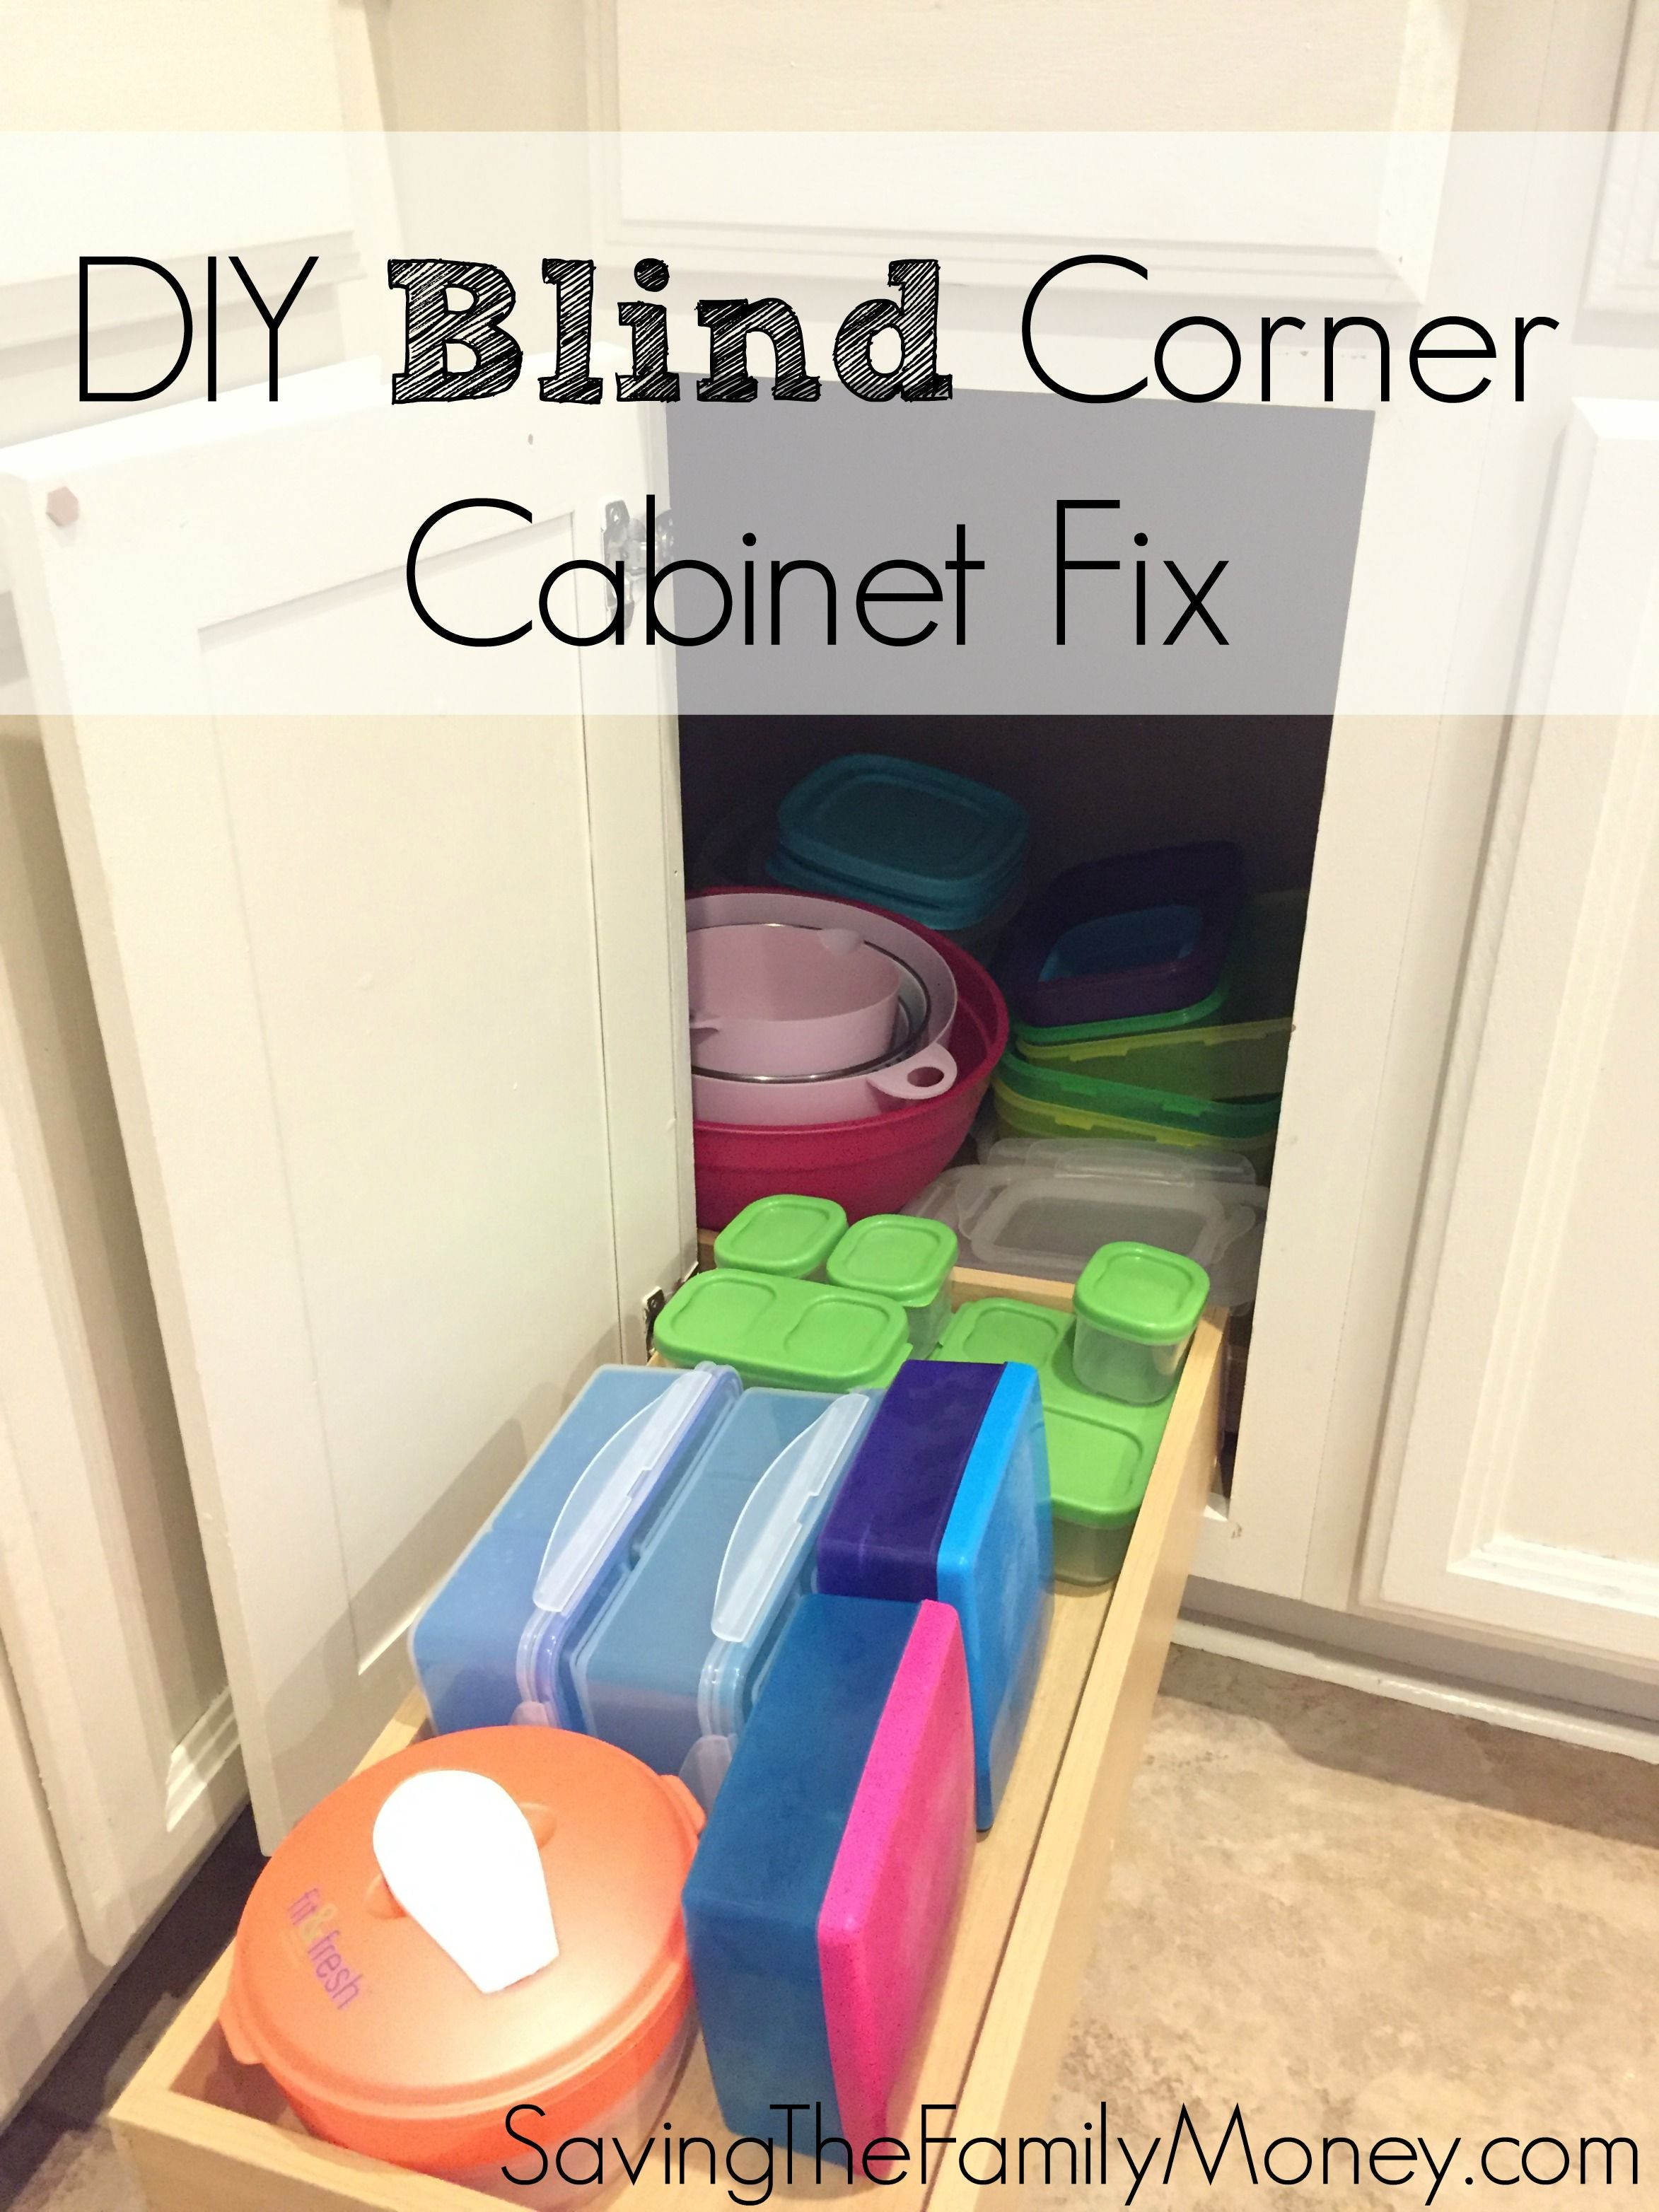 Corner storage cabinet kitchen corner storage cabinet - Storage Ideas Diy Blind Corner Cabinet Fix Kitchen